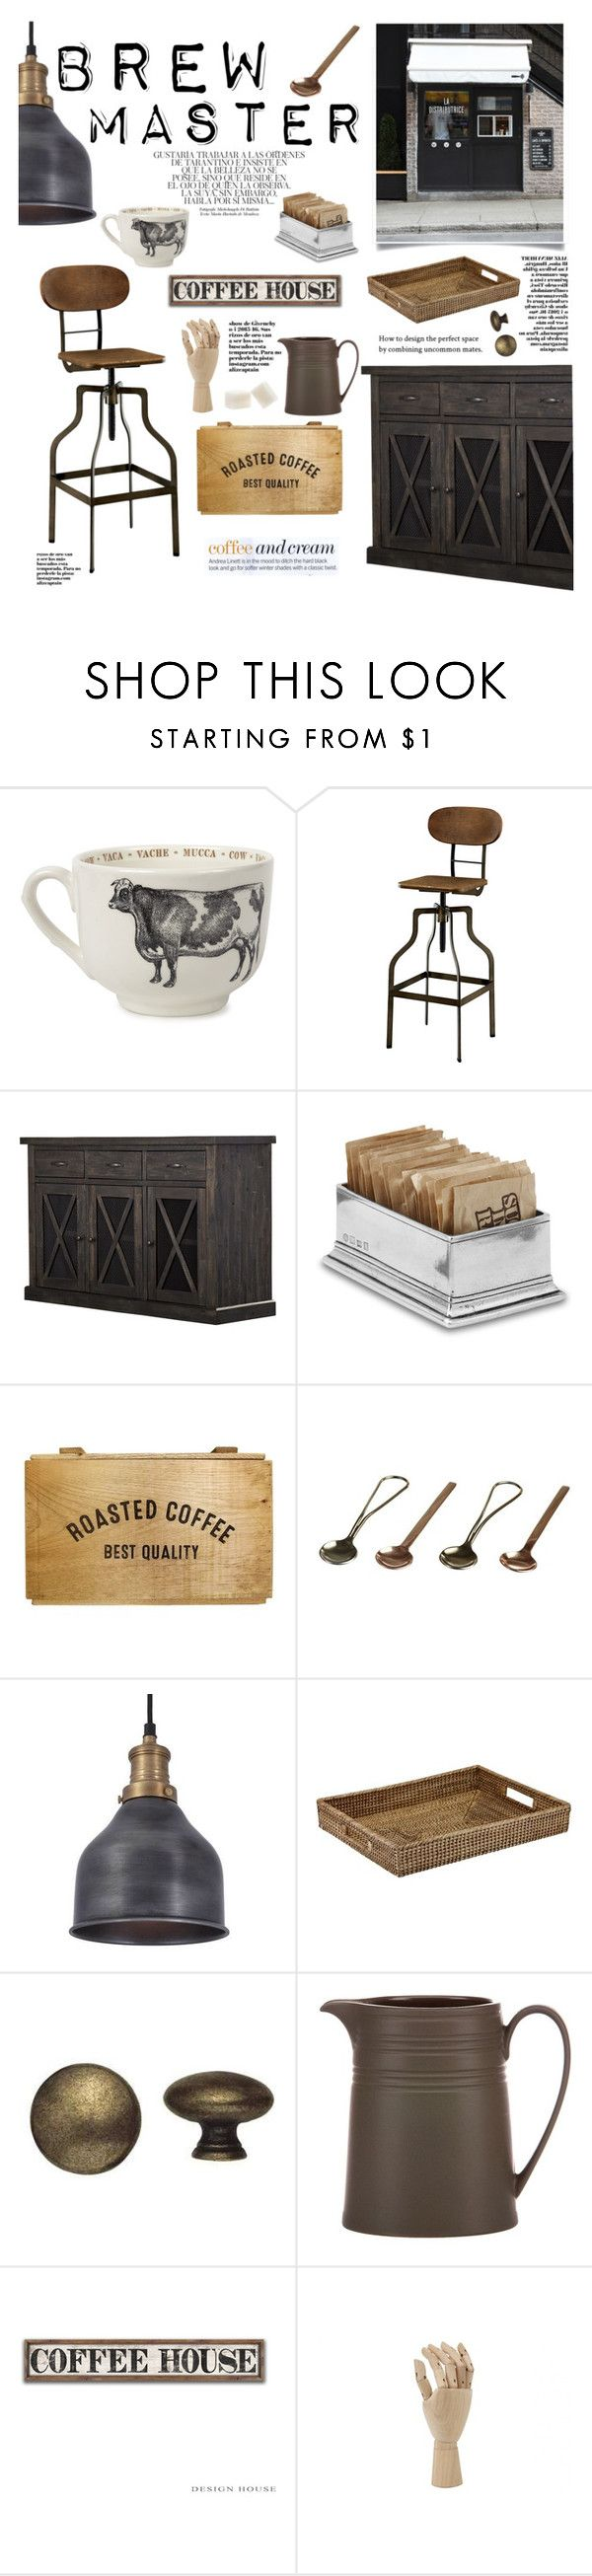 Brew Master By Barngirl On Polyvore Featuring Interior Interiors Design Home